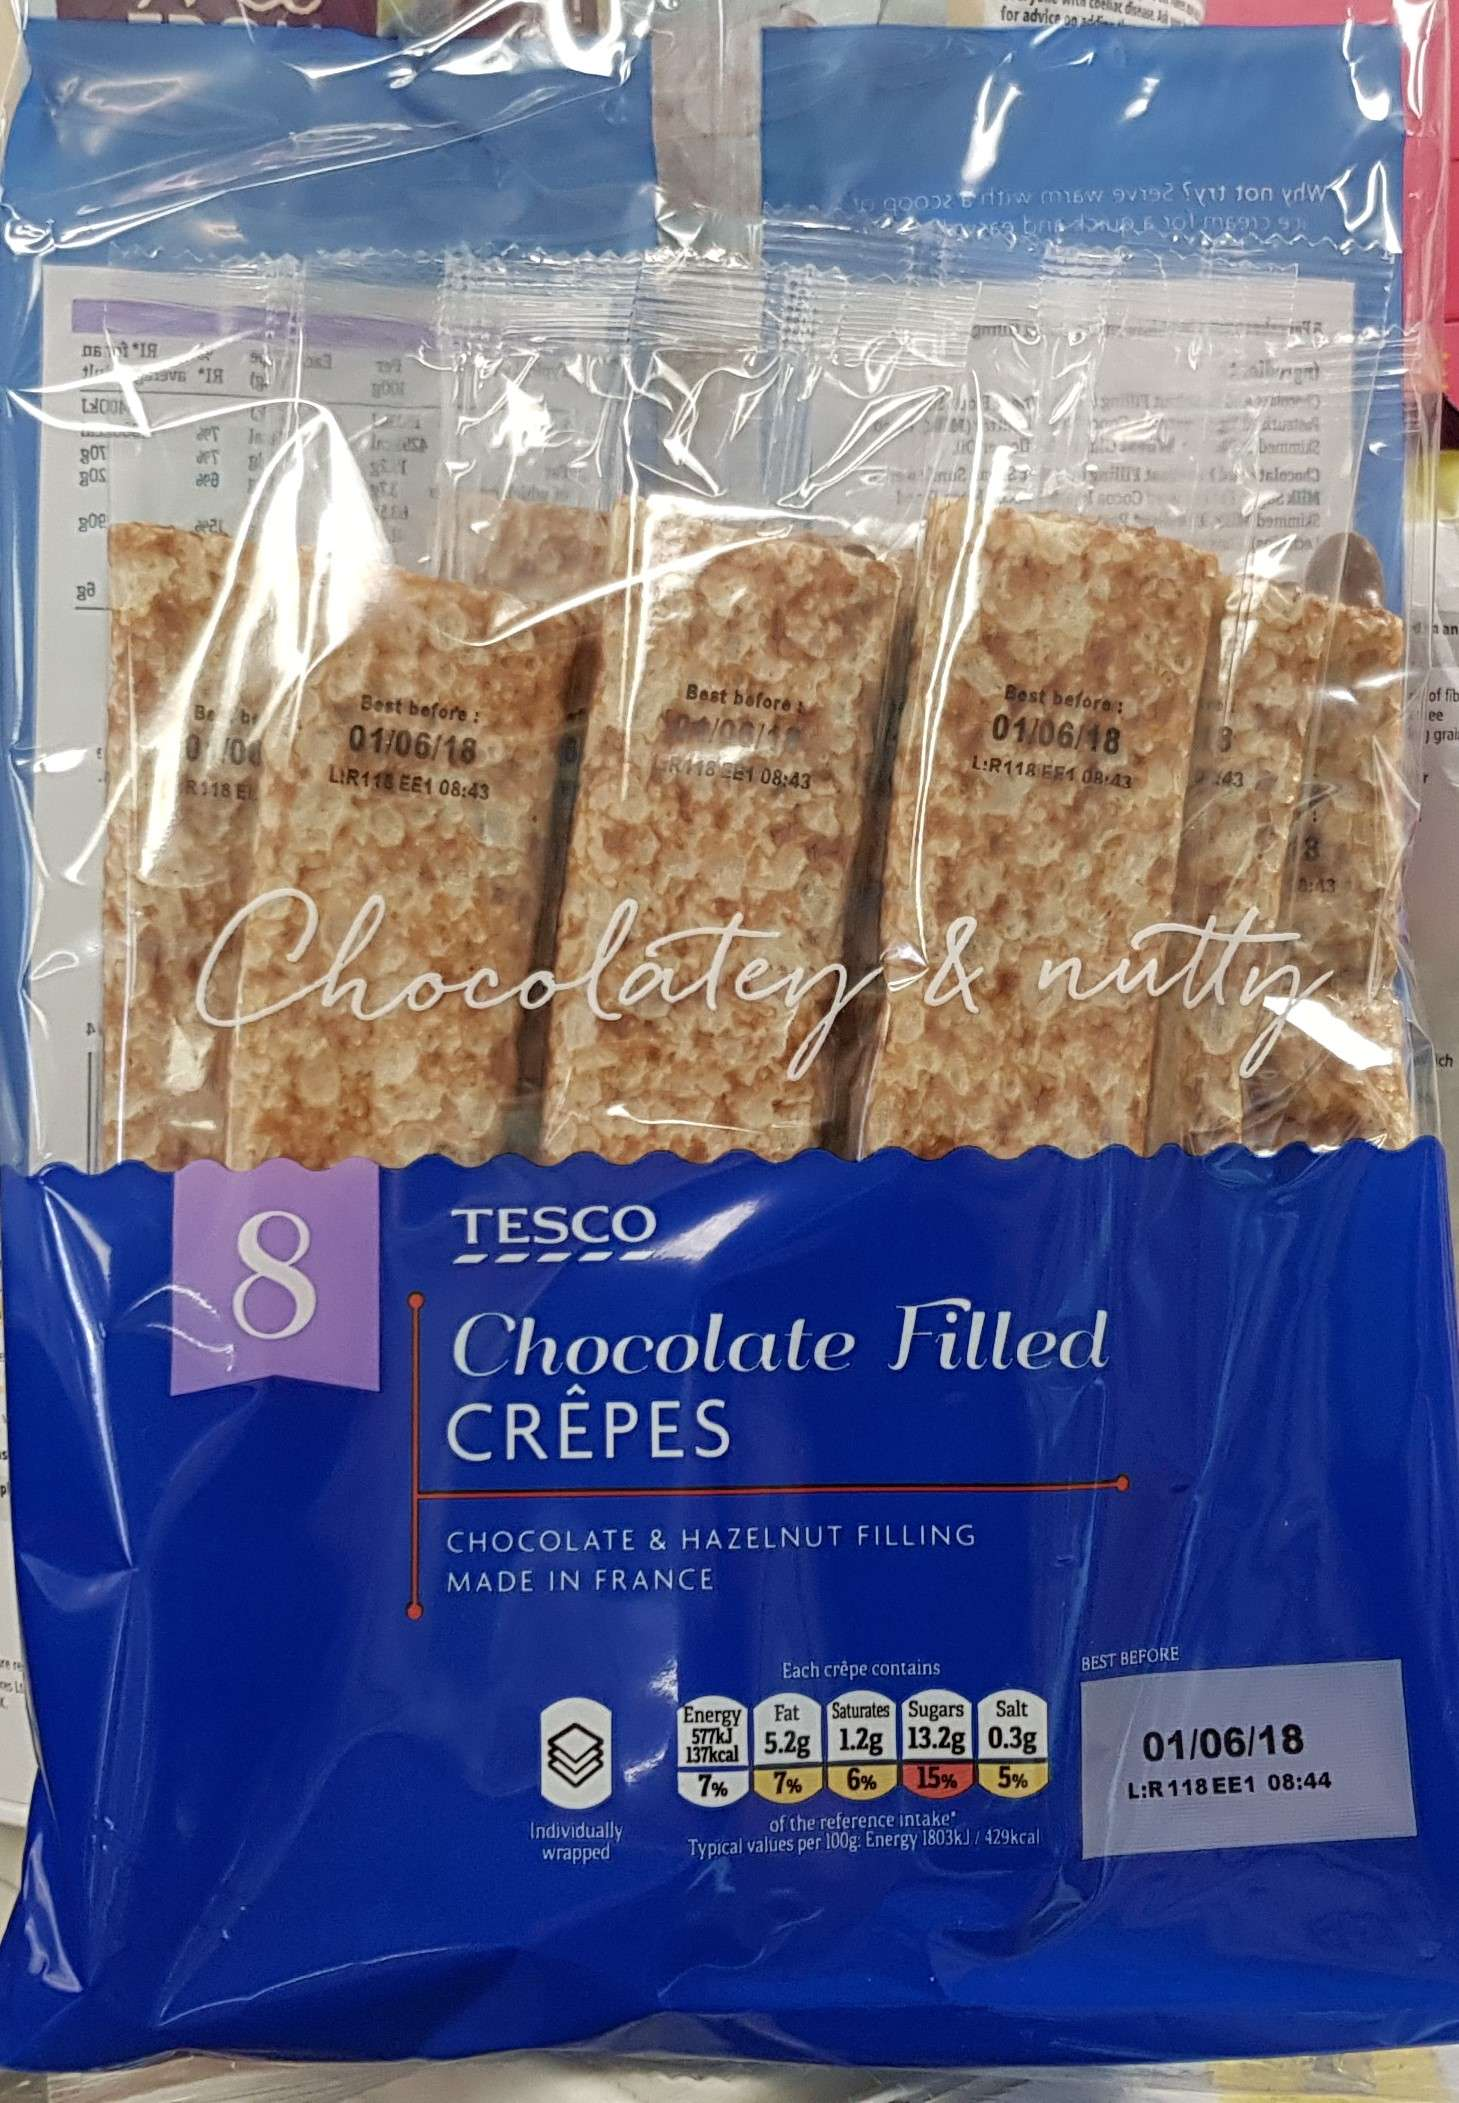 Tesco Chocolate Filled Crepe Syns Syn Search Results For The 12th May 2018